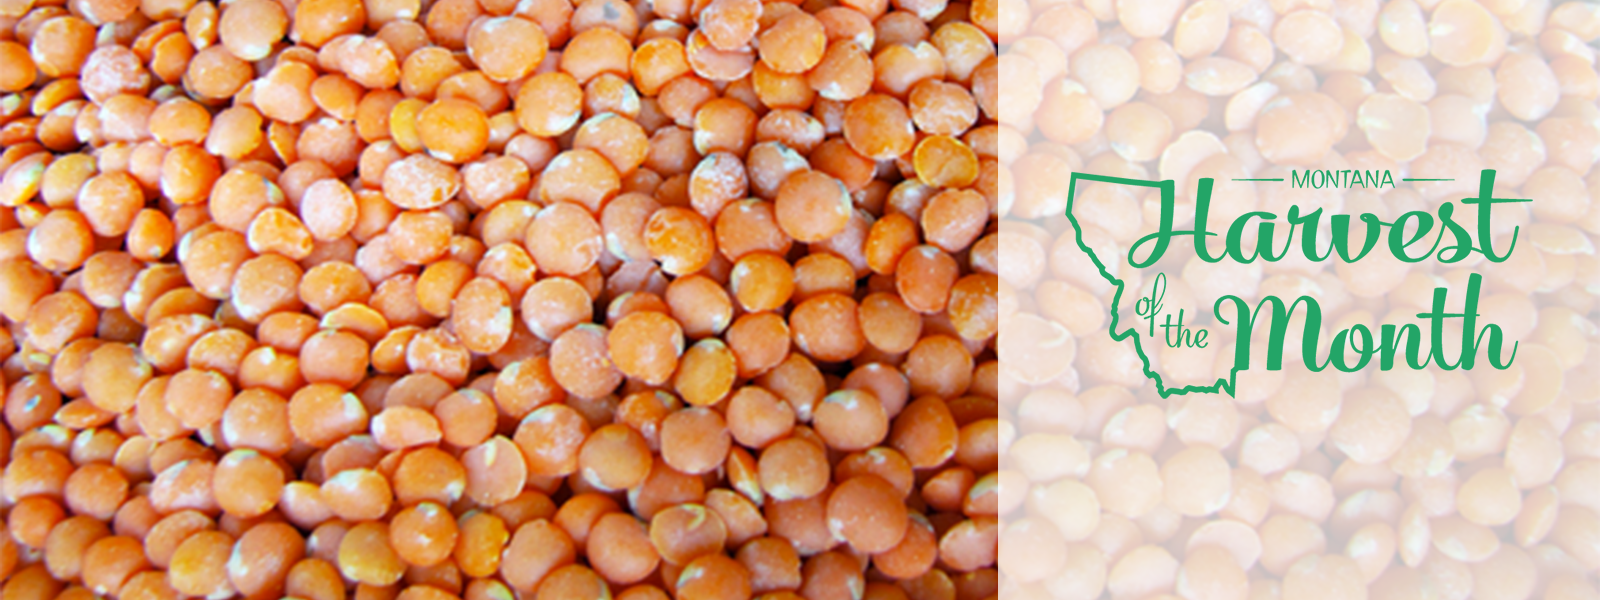 Enjoy lentils as this month's Harvest of the Month!